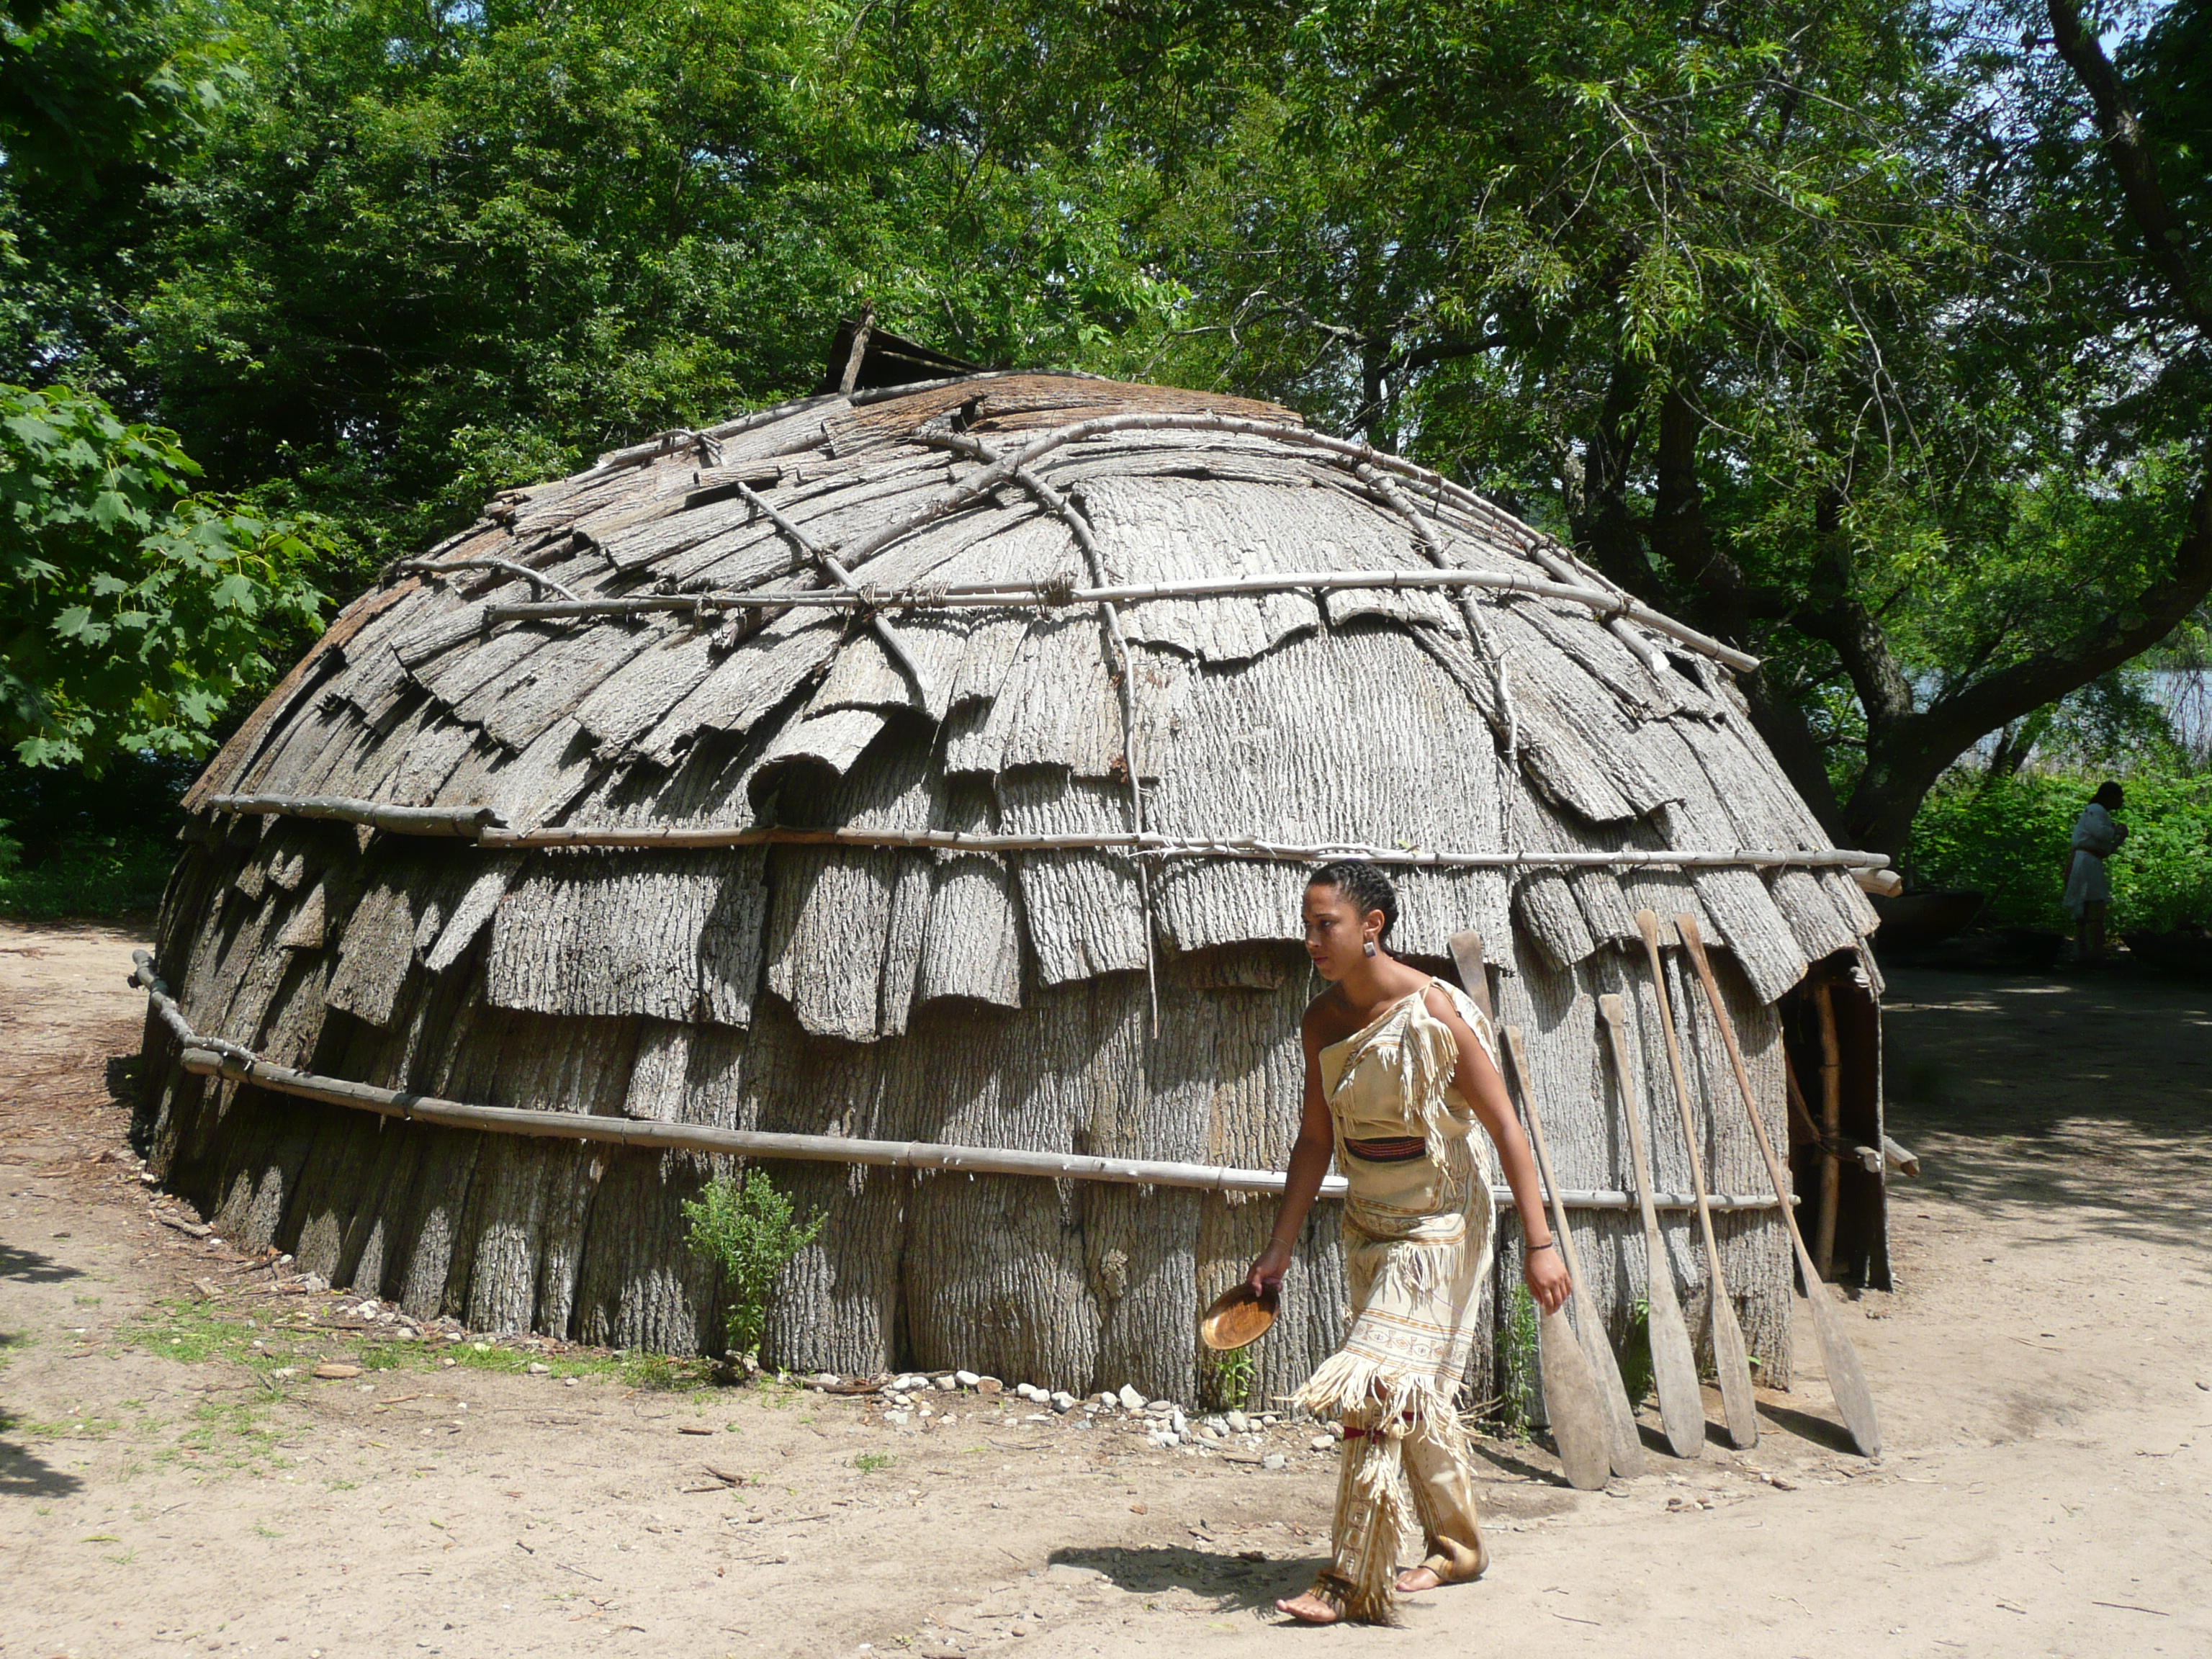 Pilgrims and Wampanoags | historyplaces